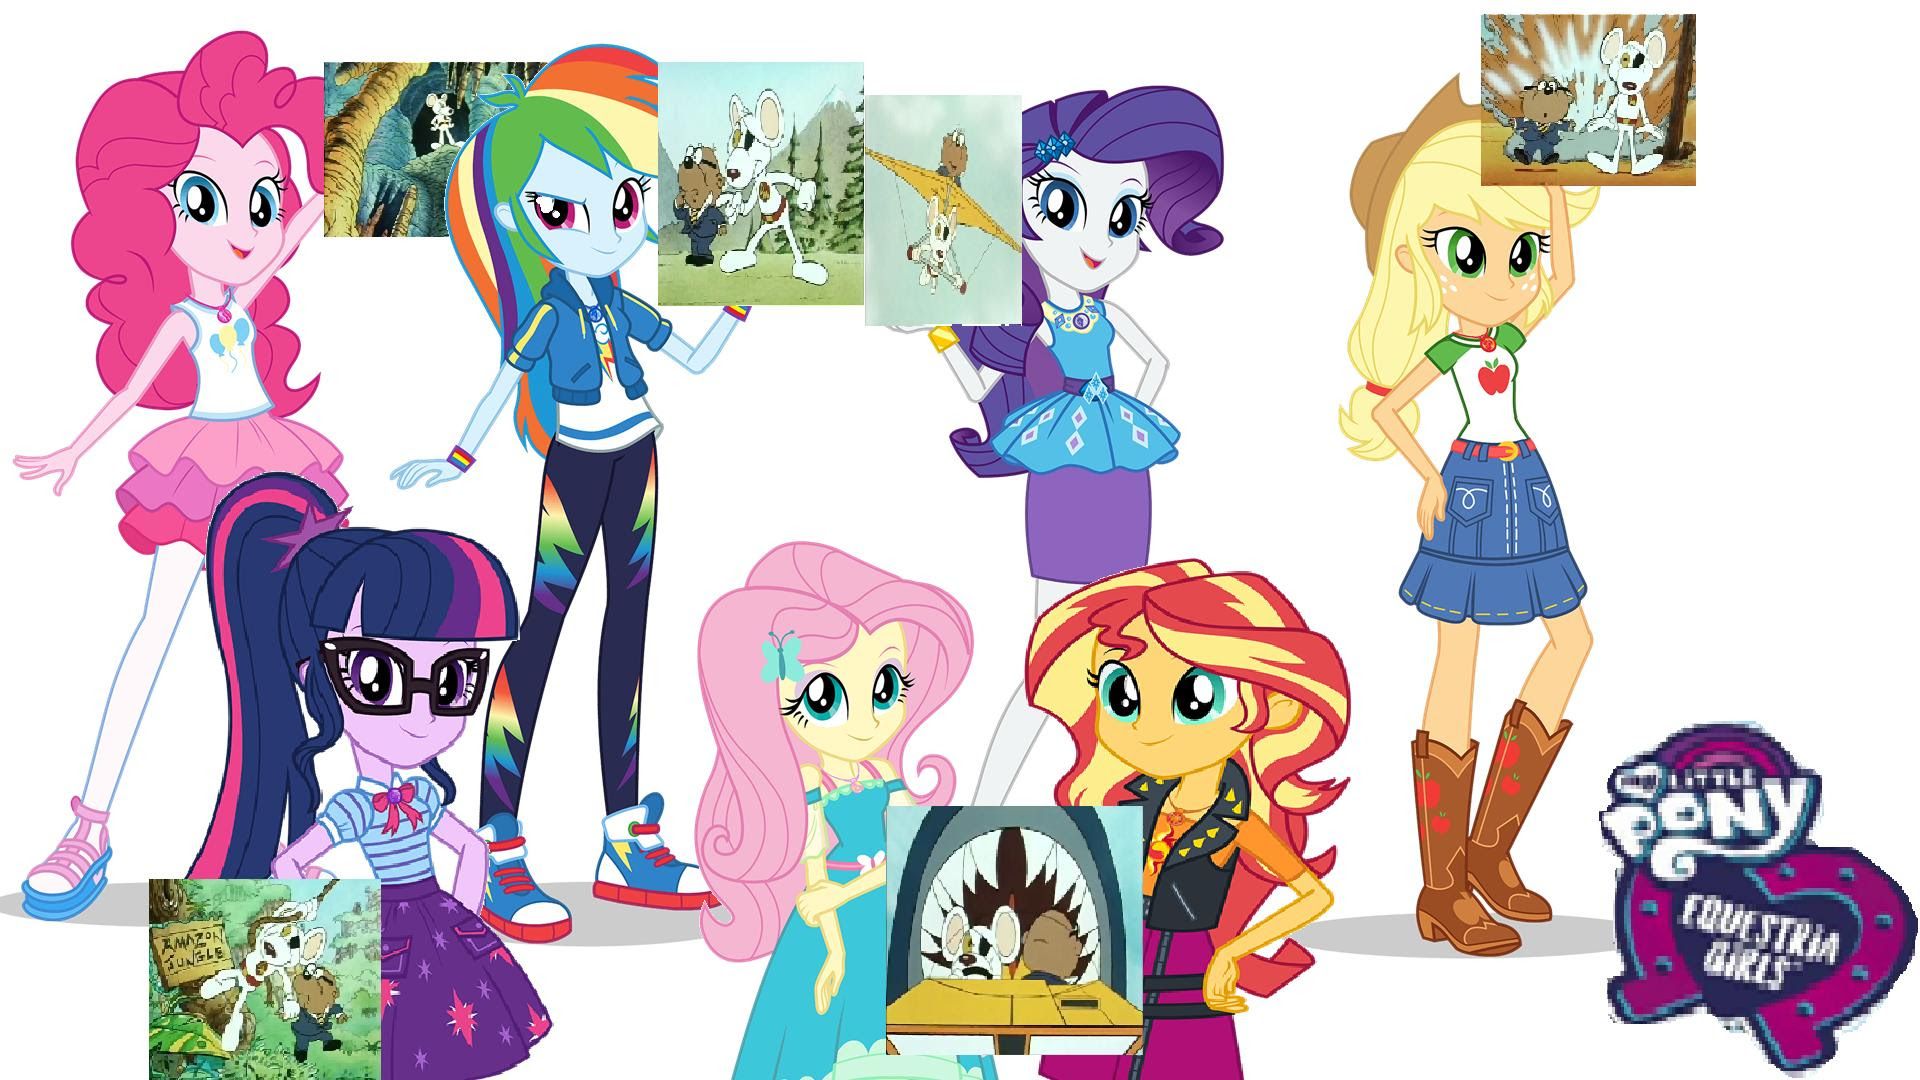 New Picture Jpg My Little Pony Equestria Girls The Digital